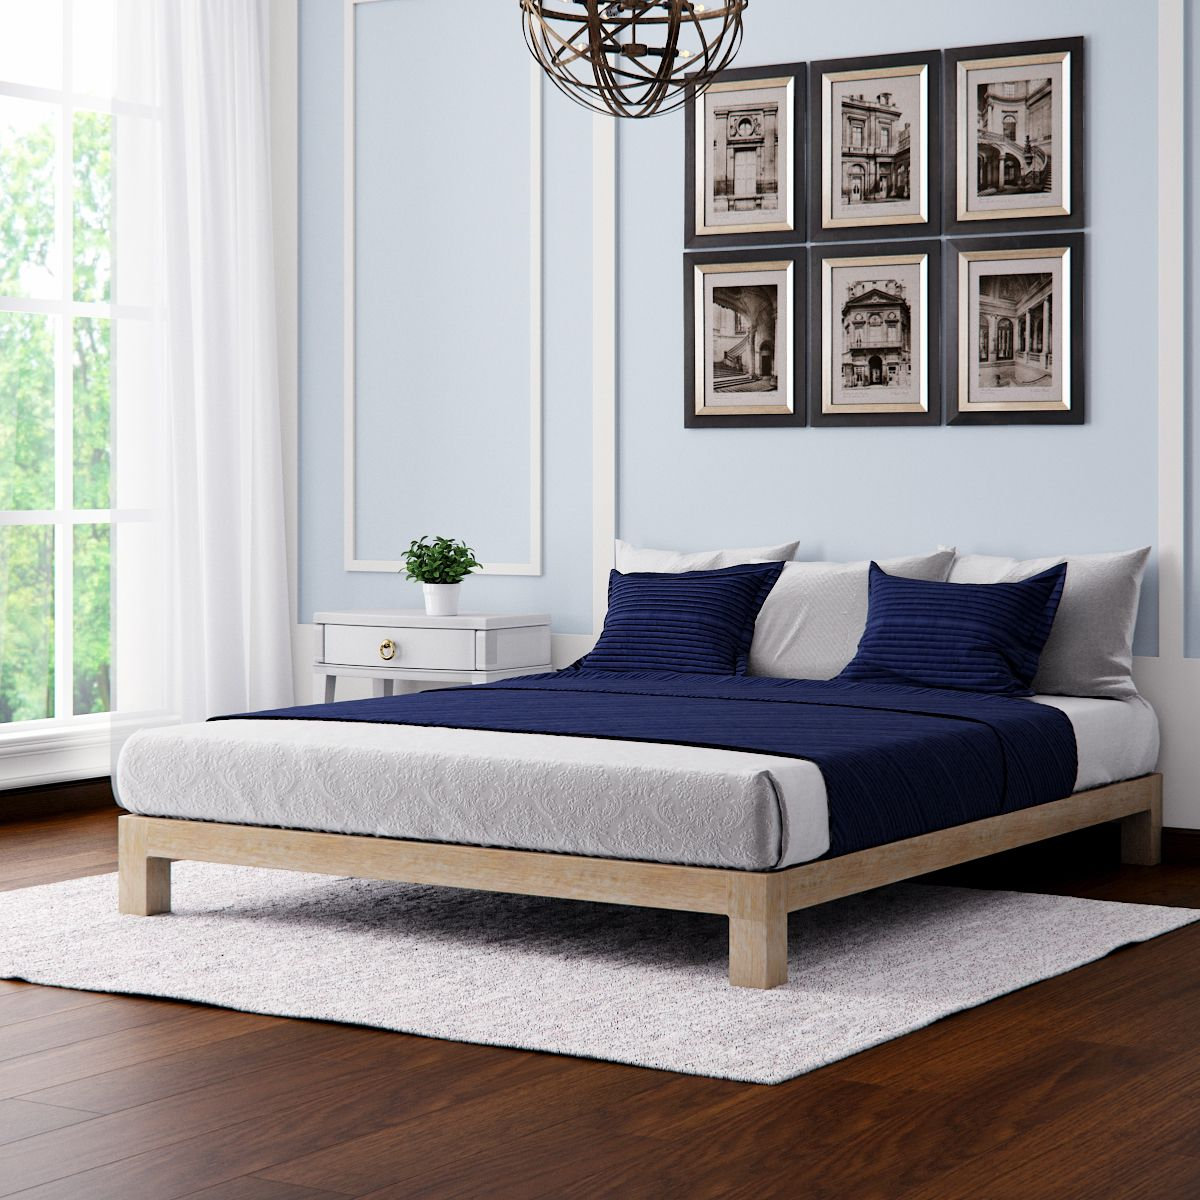 Low Bed Frames Canada Basic Bed